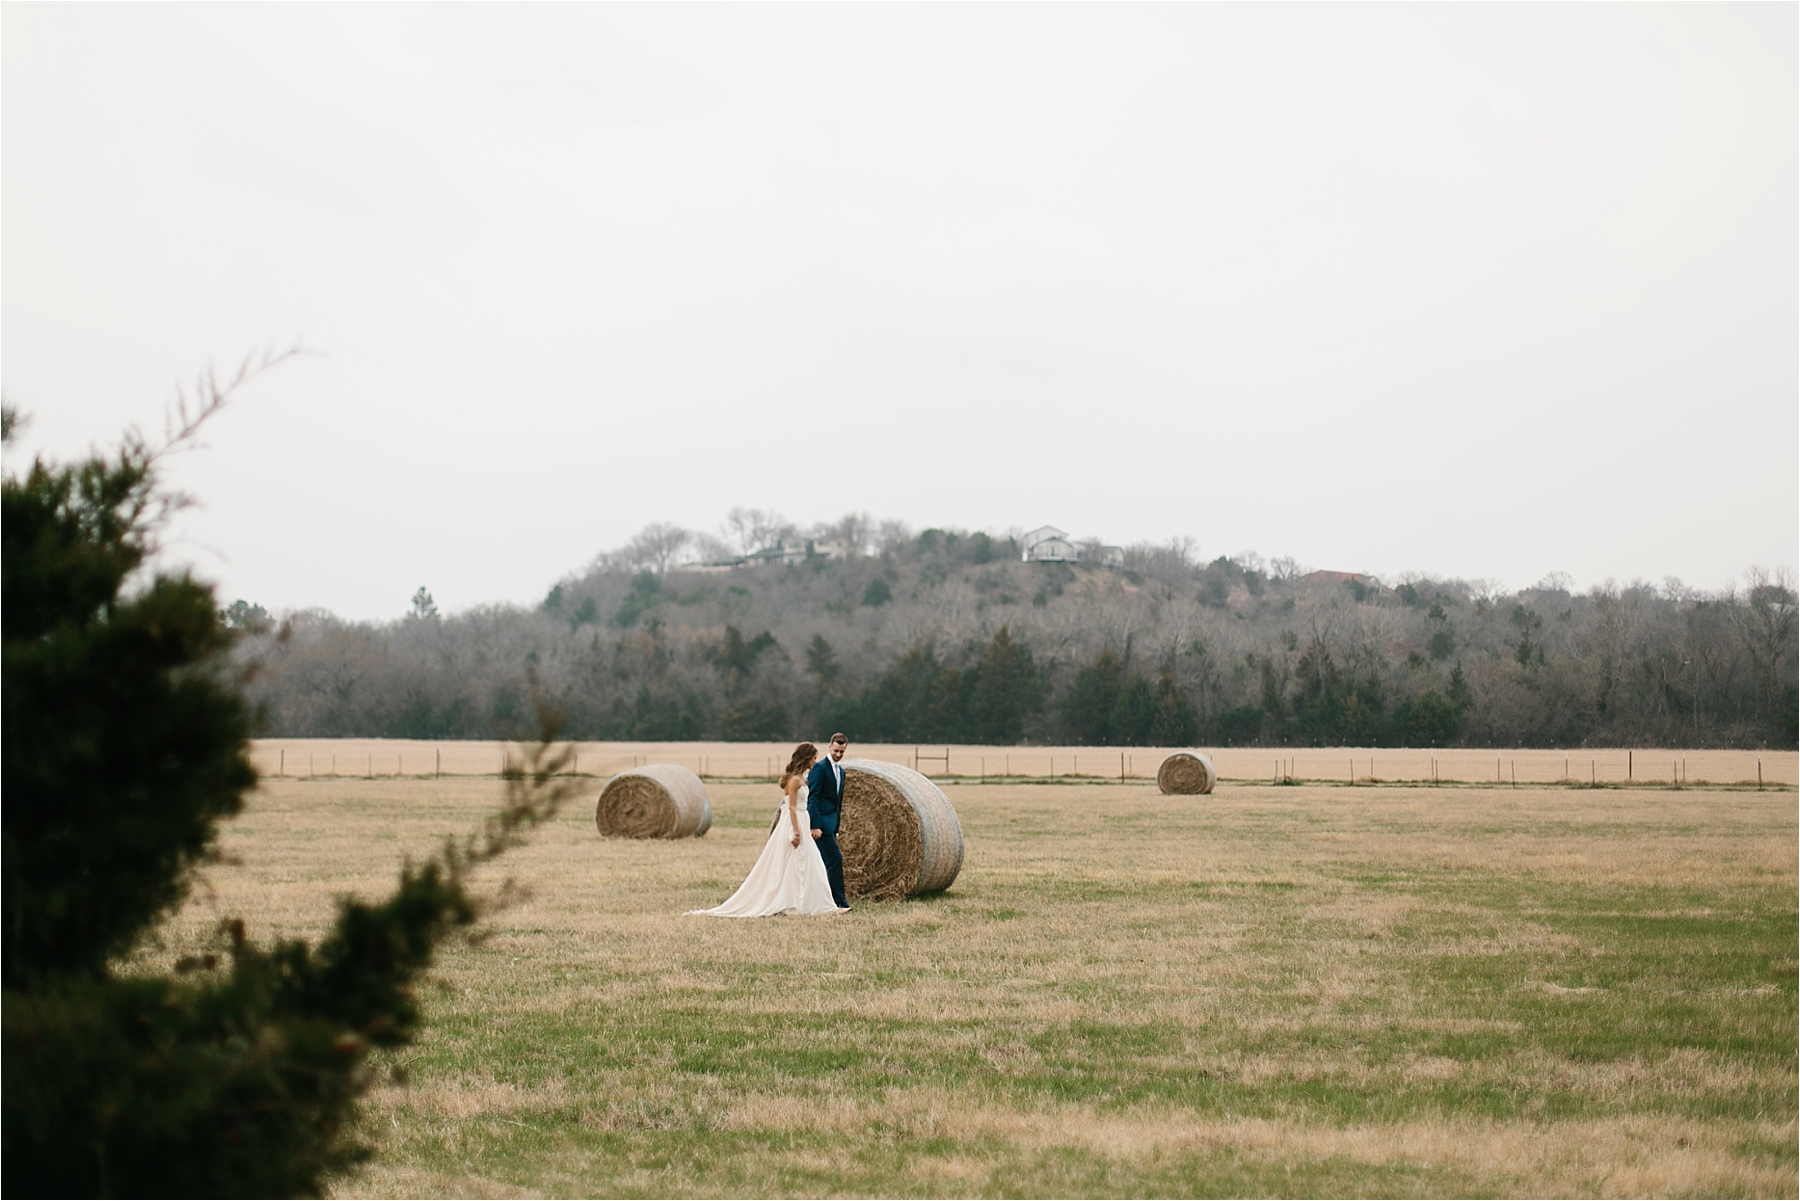 Lauren + Matt __ an intimate, emotional, blush pink, navy blue, and greenery toned wedding accents at the Brooks at Weatherford by North Texas Wedding Photographer Rachel Meagan Photography069